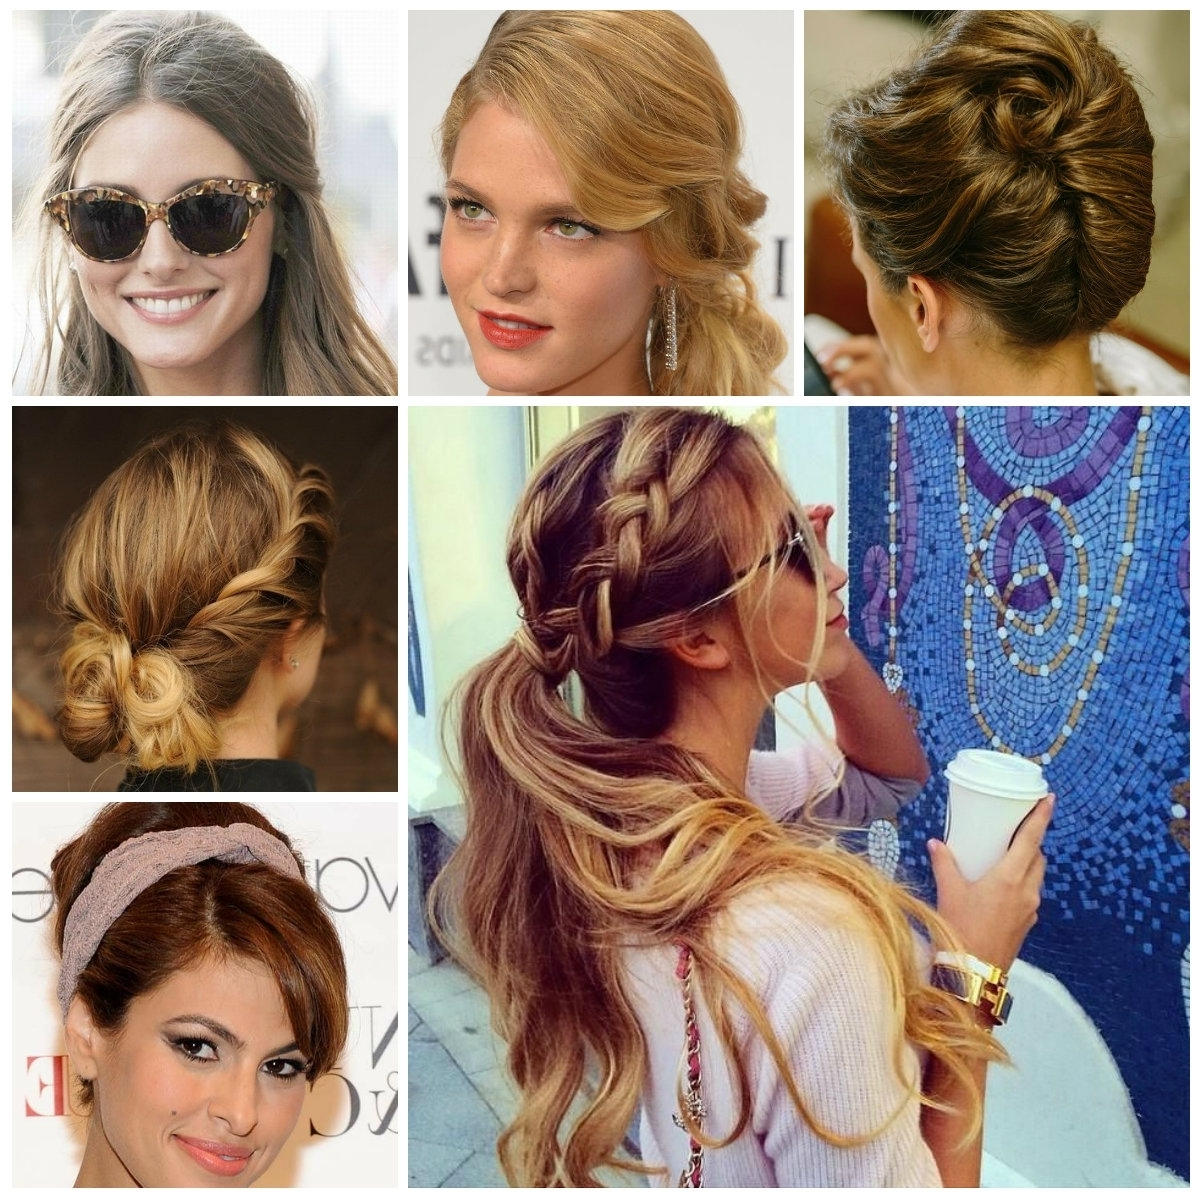 Easy Casual Updo Hairstyles For Long Hair – Women Medium Haircut With Regard To Easy Updo Hairstyles (View 10 of 15)